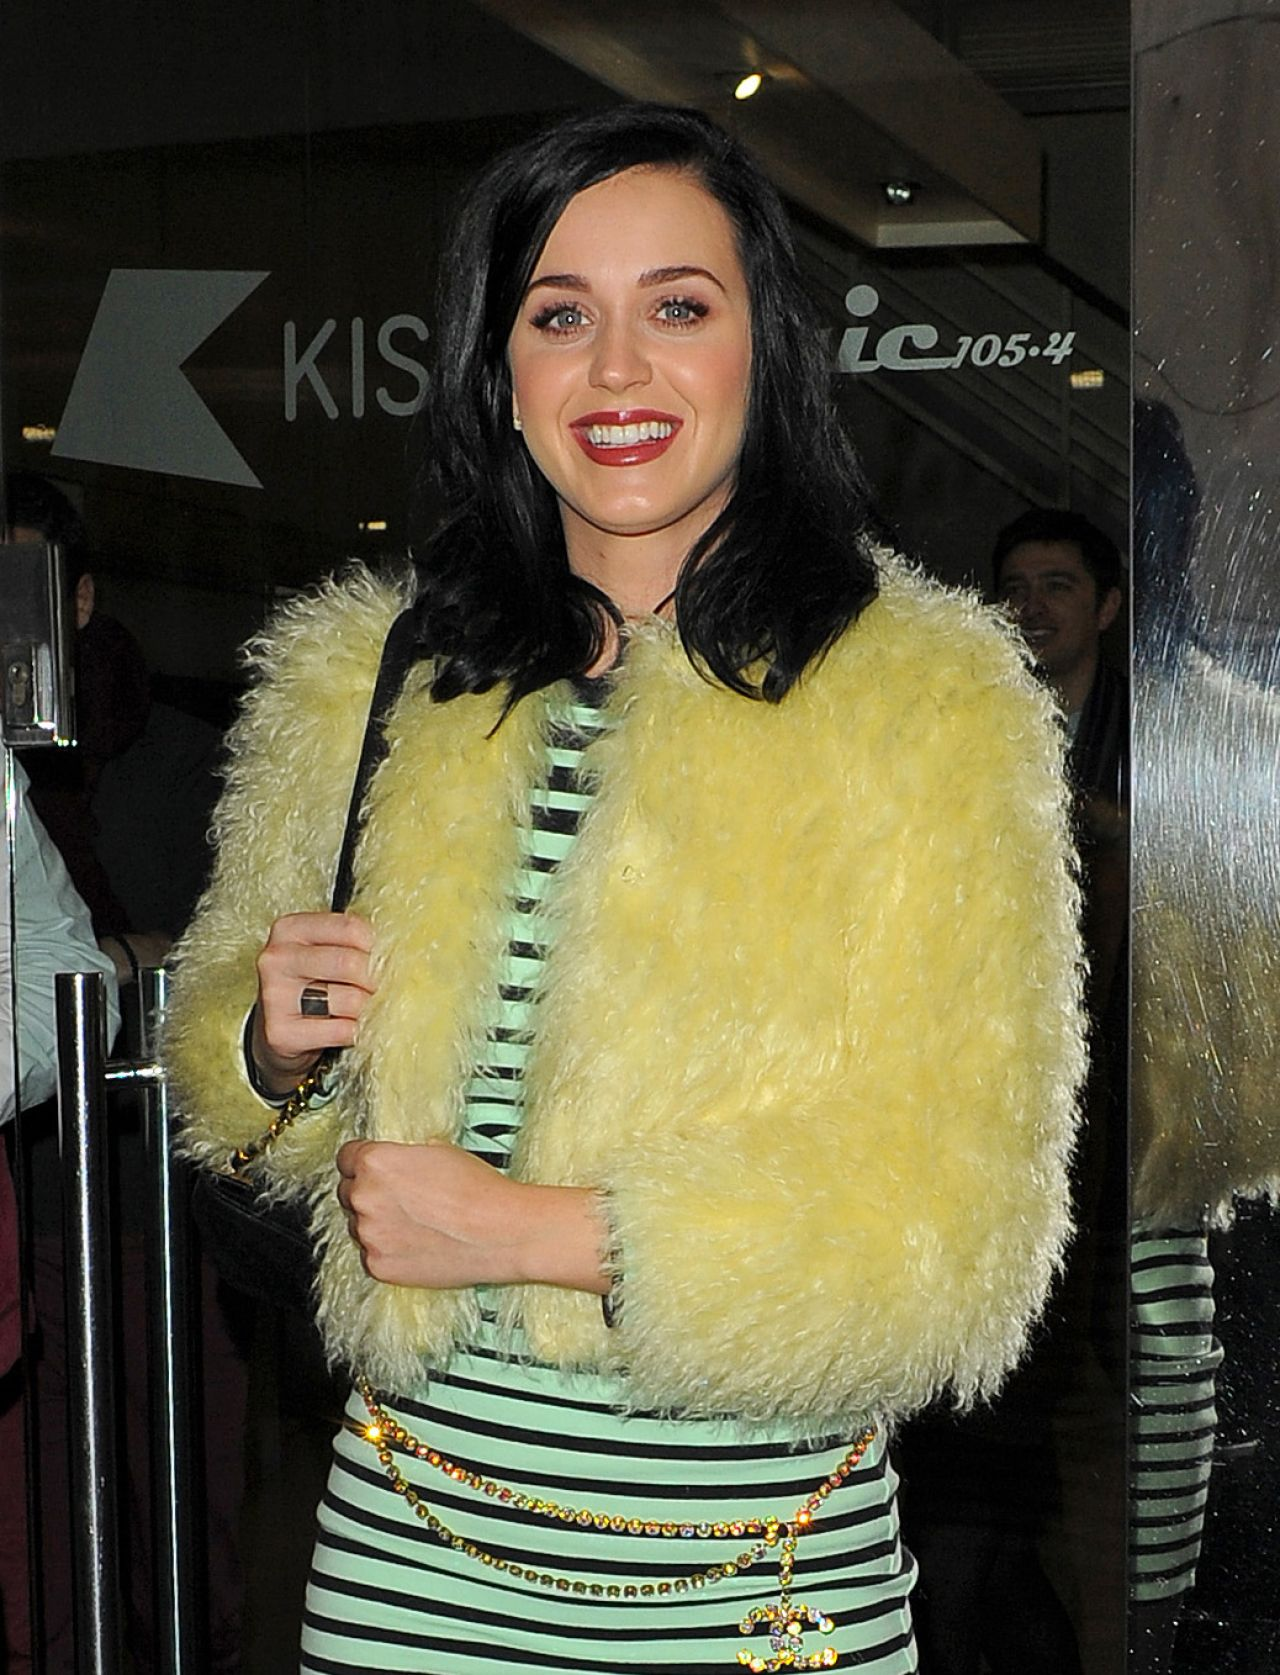 Katy Perry Street Style - Leaving Kiss FM Radio Station in London - December 2013